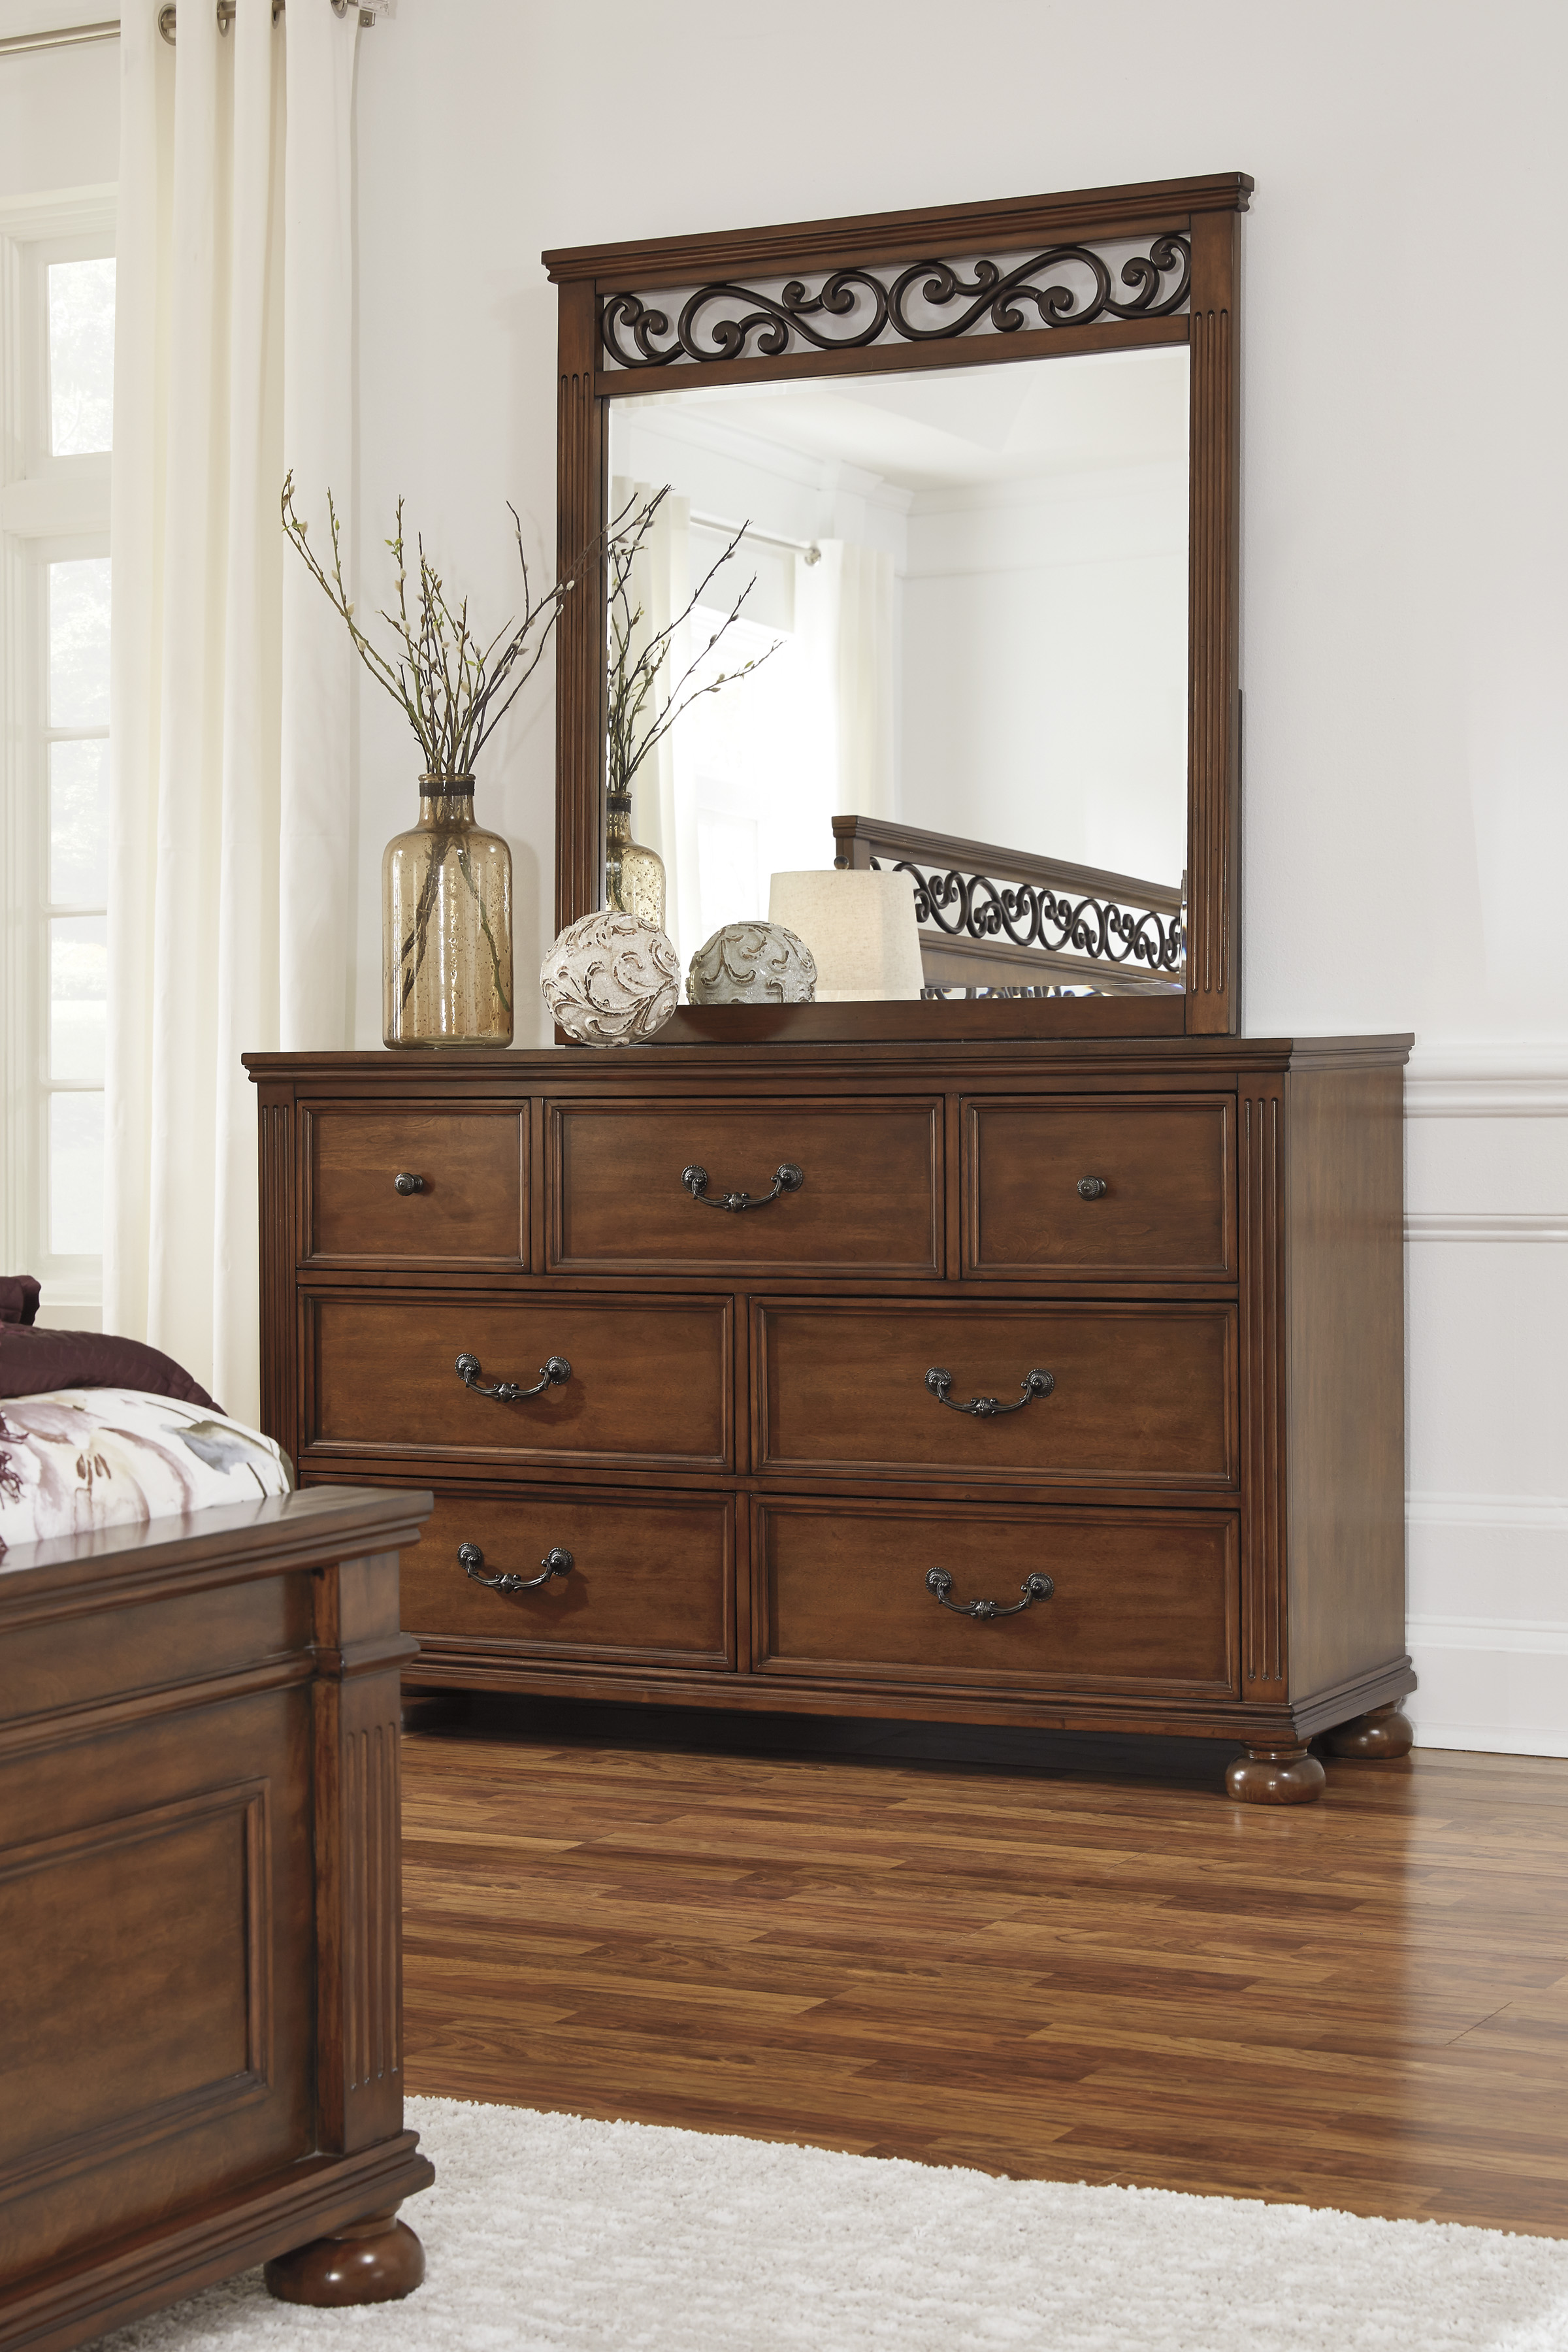 Furniture extreme calgary lazzene bedroom mirror for Good value bedroom furniture